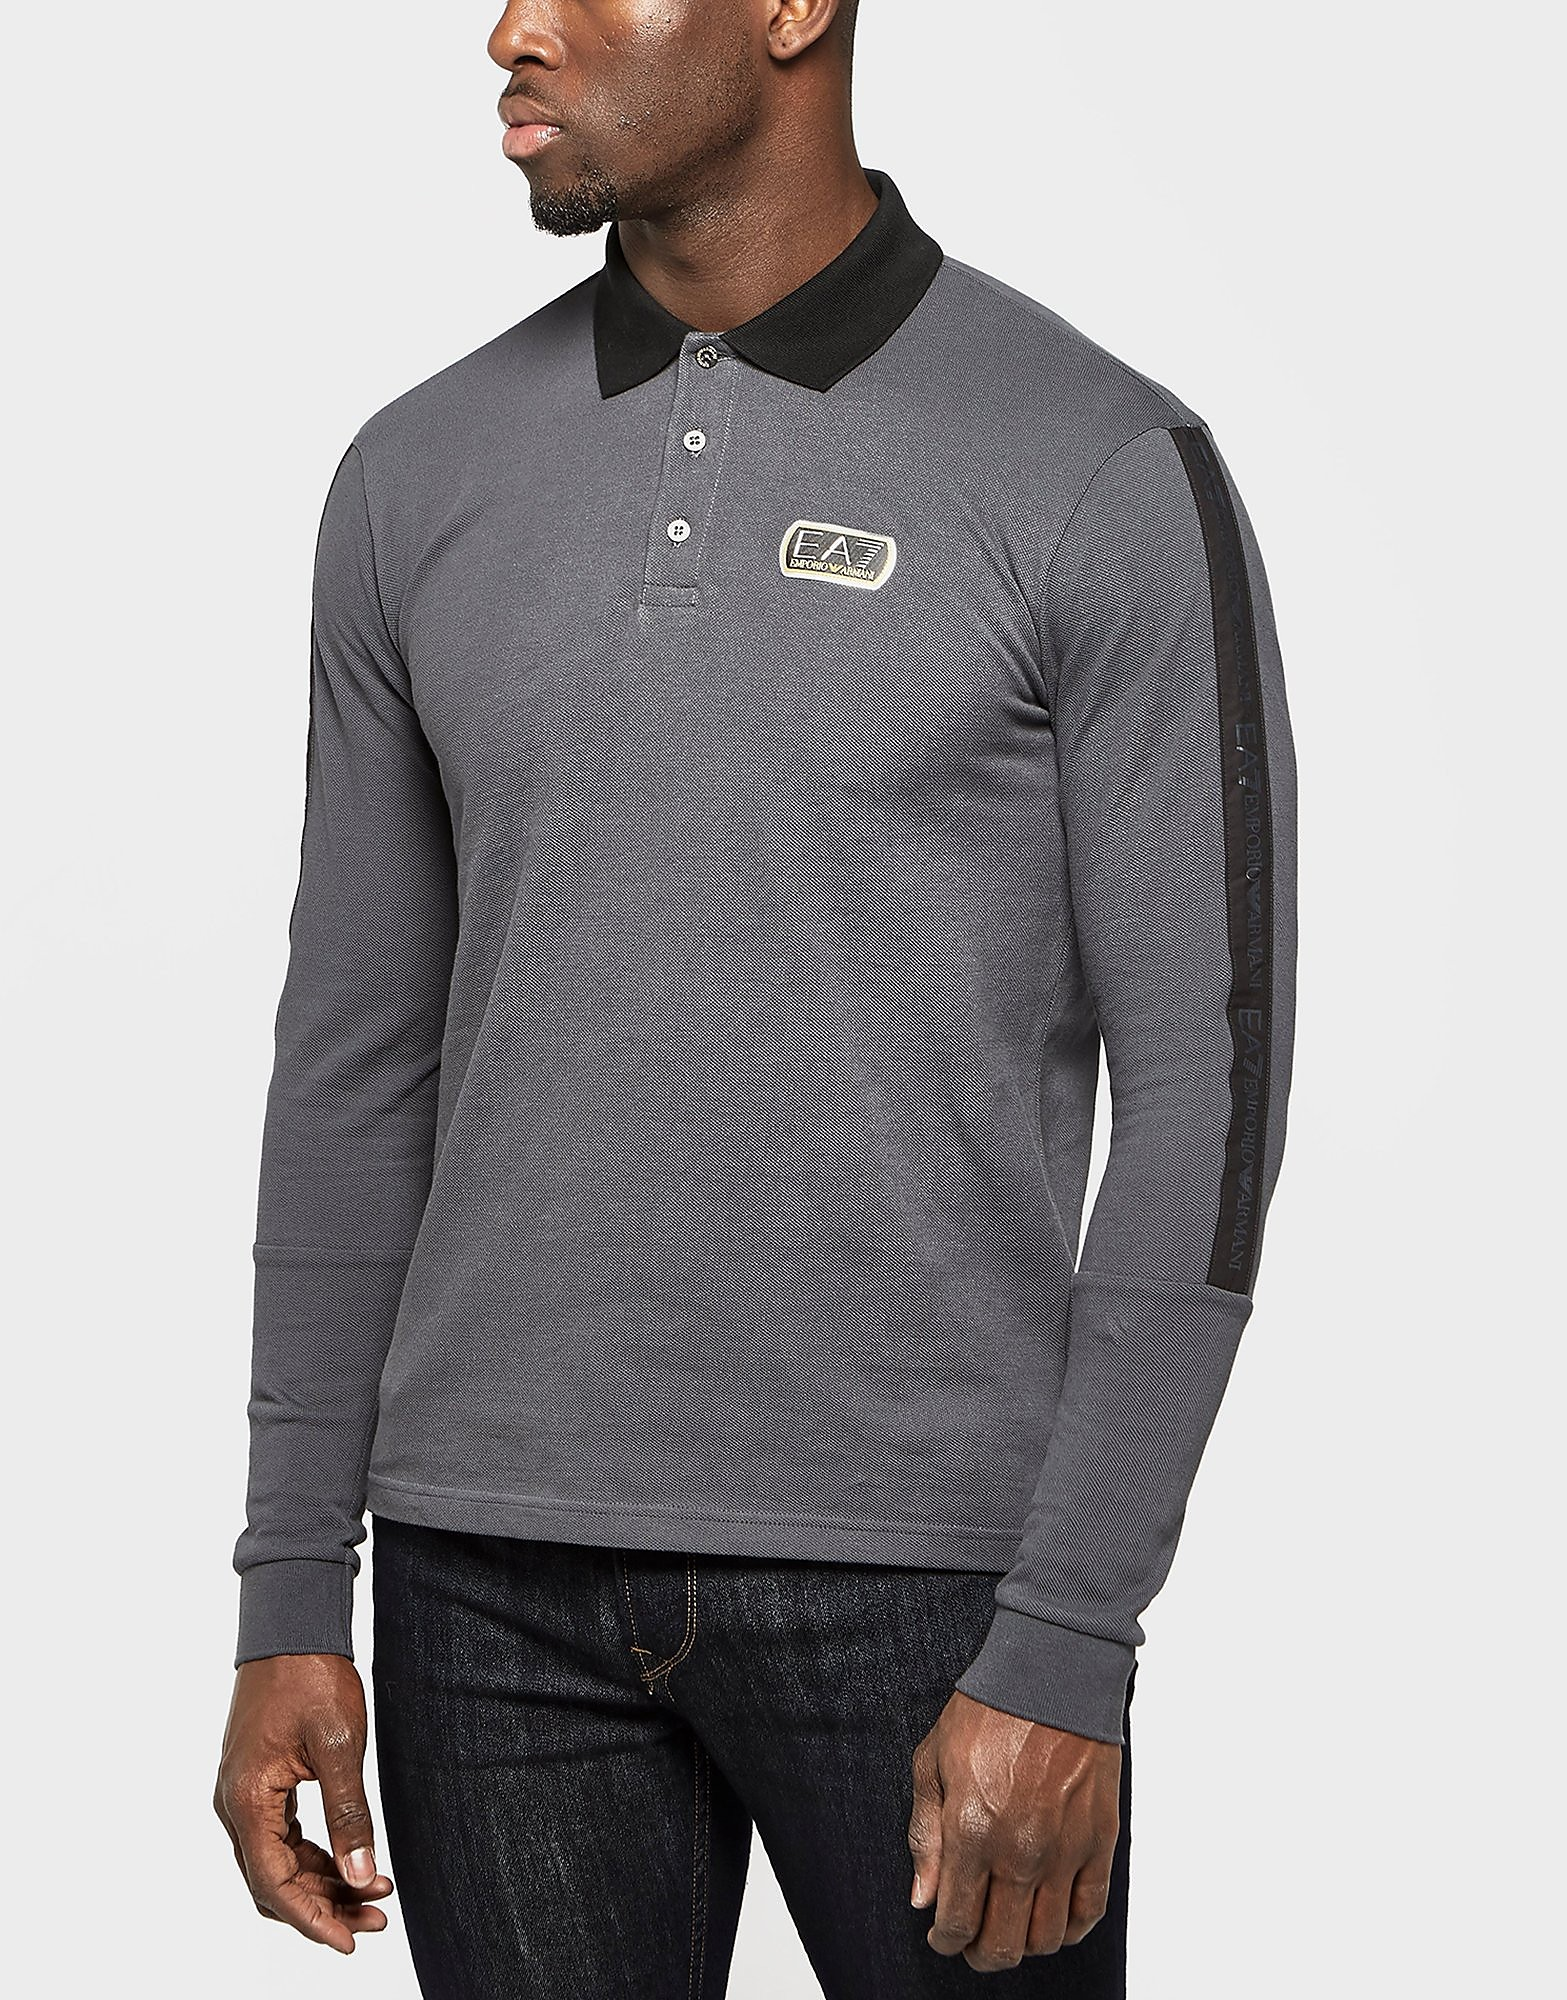 Emporio Armani EA7 Long Sleeve Polo Shirt - Exclusive